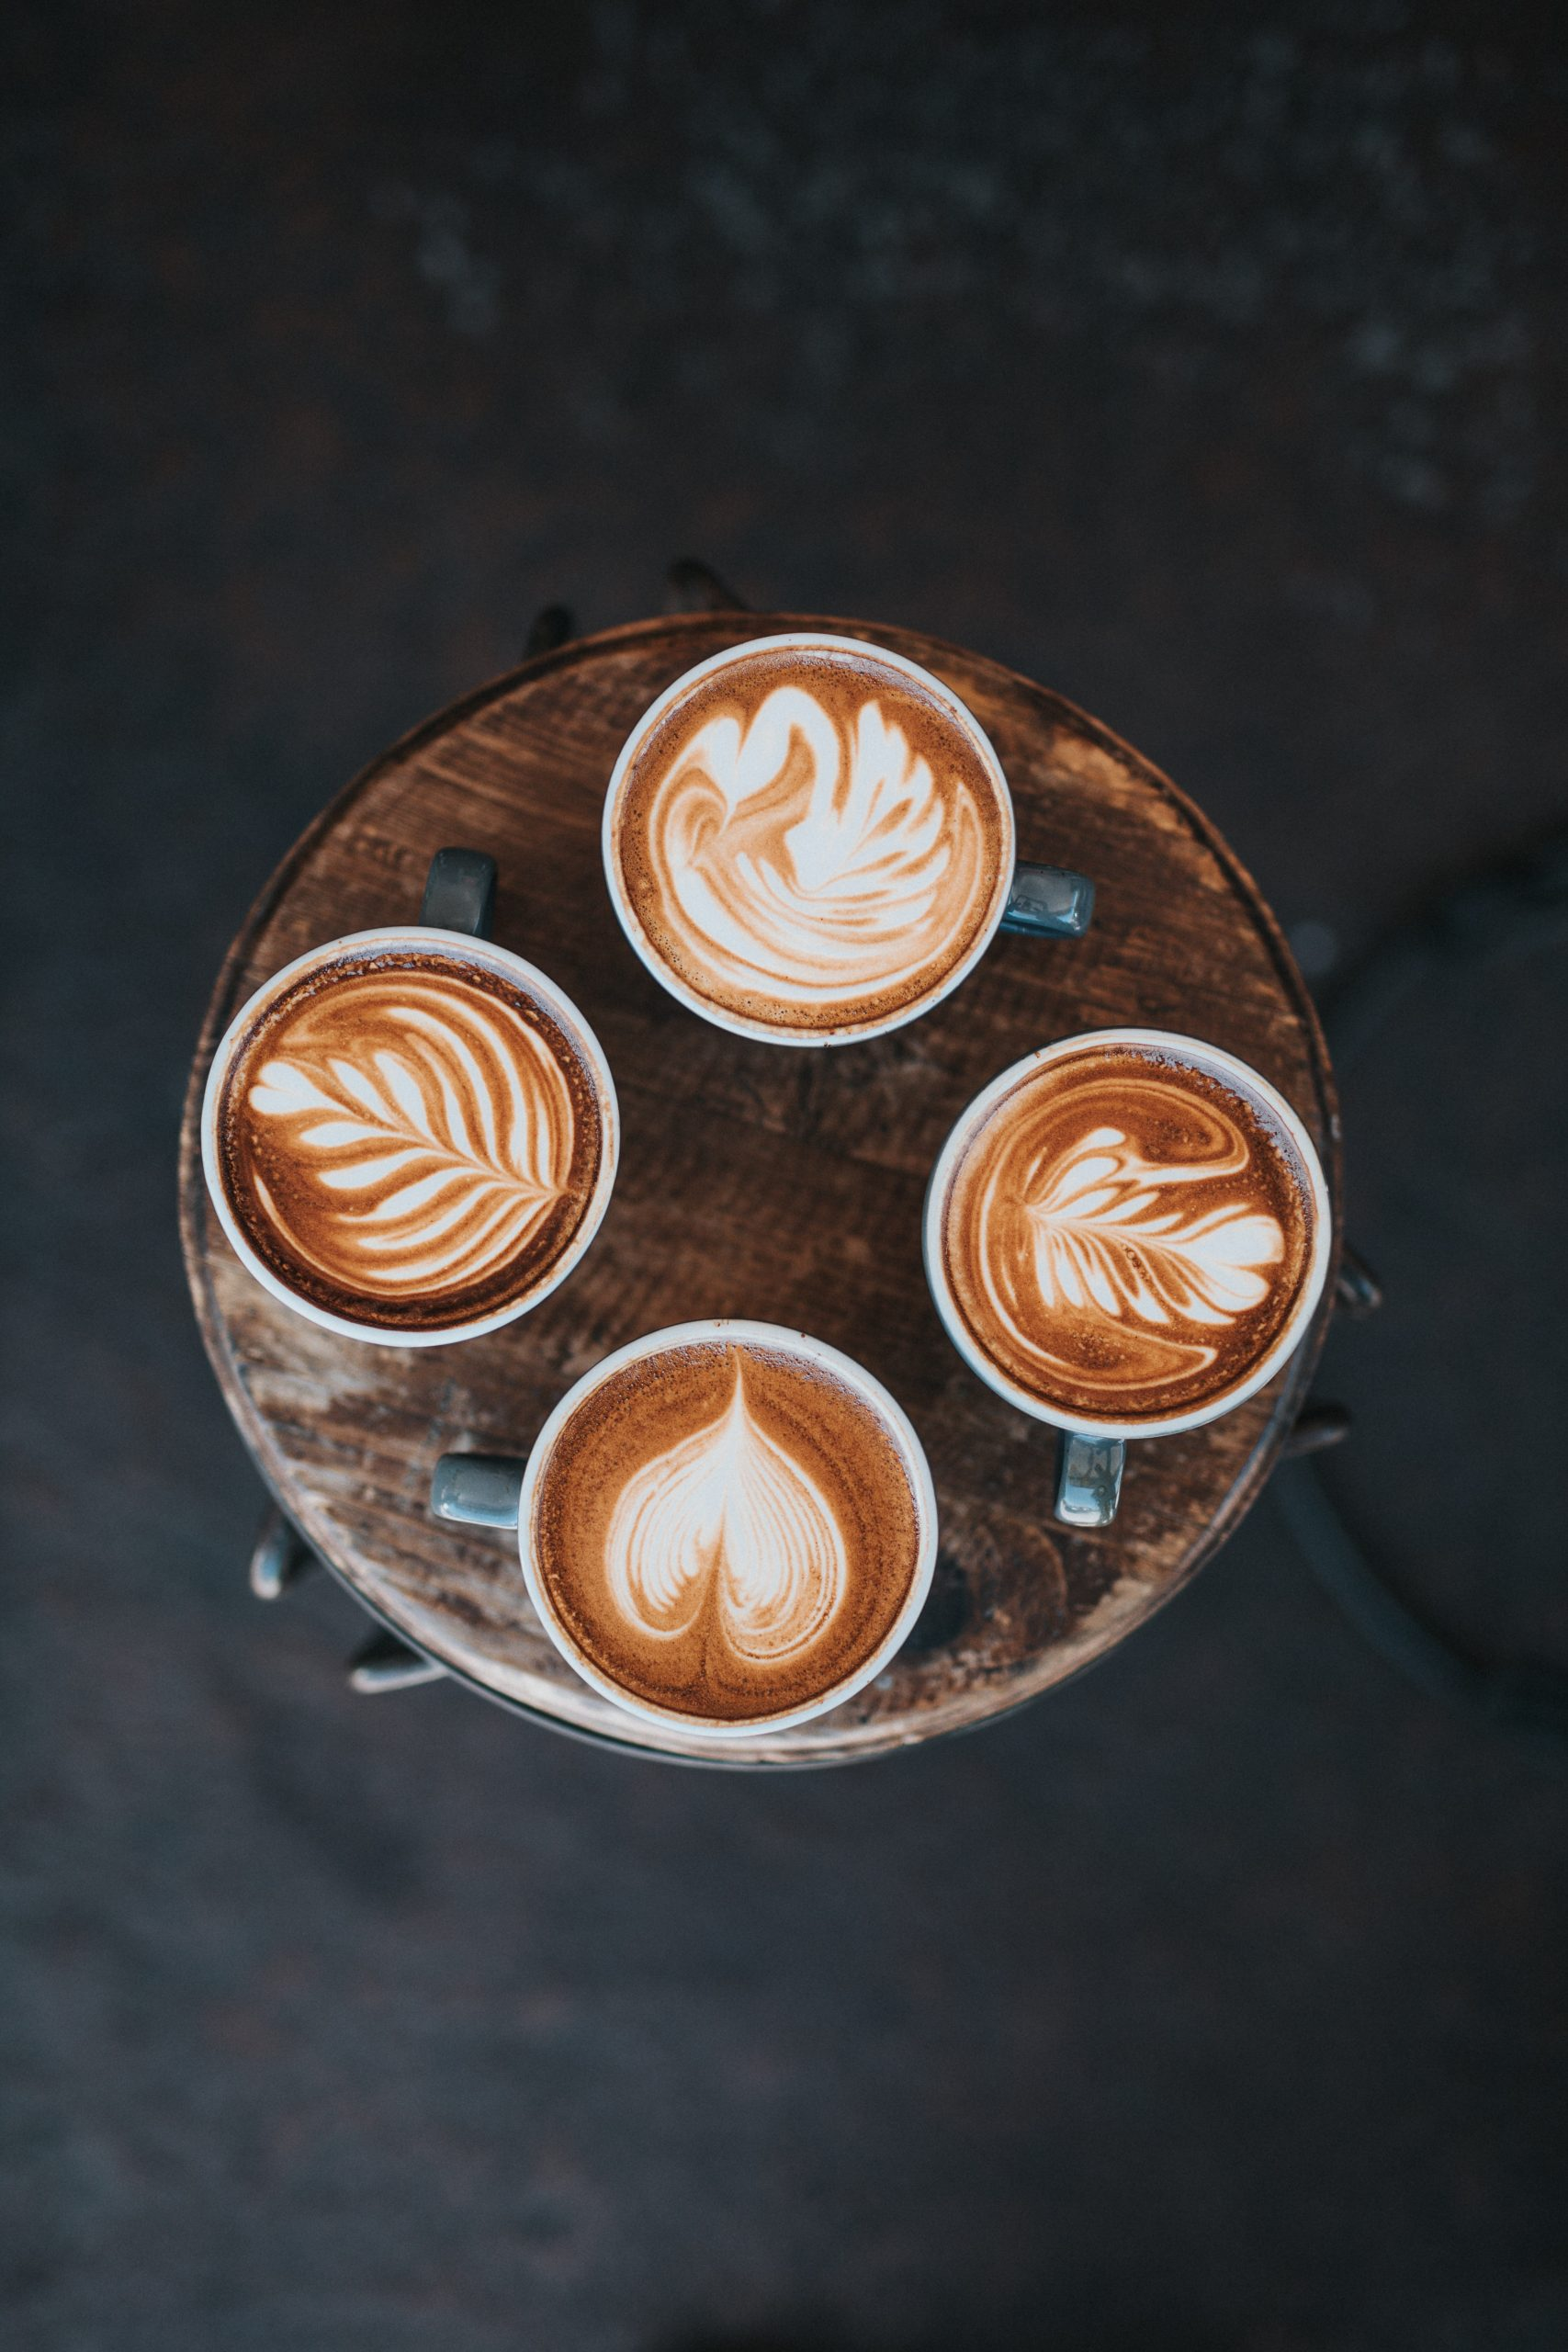 How to Make Coffee More Formal